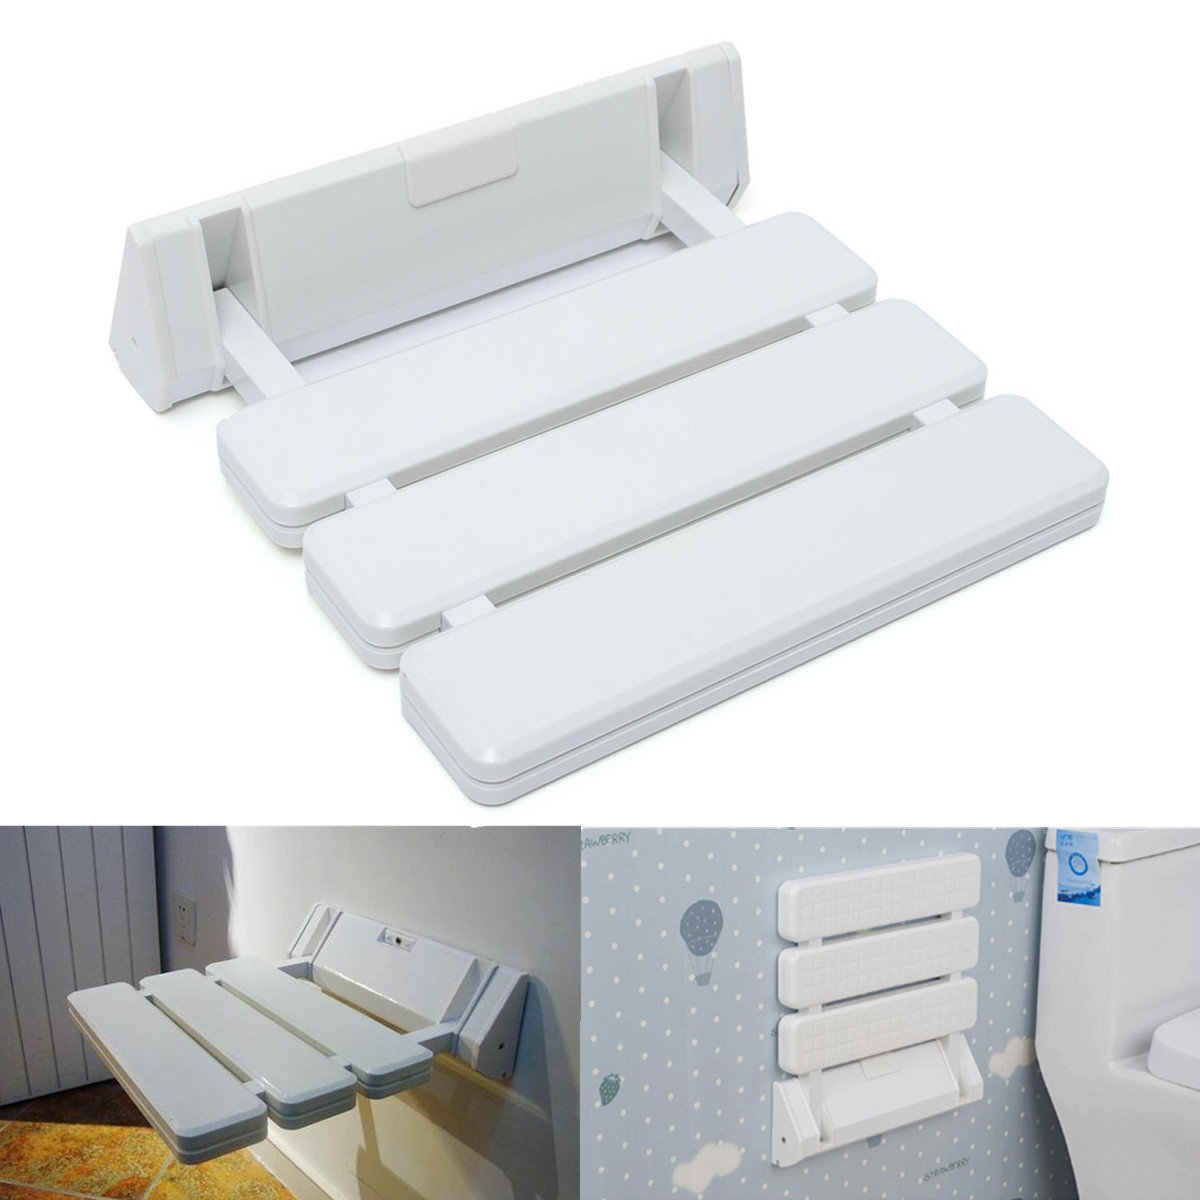 Bath Wall Mounted Folding Shower Seat Bench Stool With Mobility Aid For Bathroom